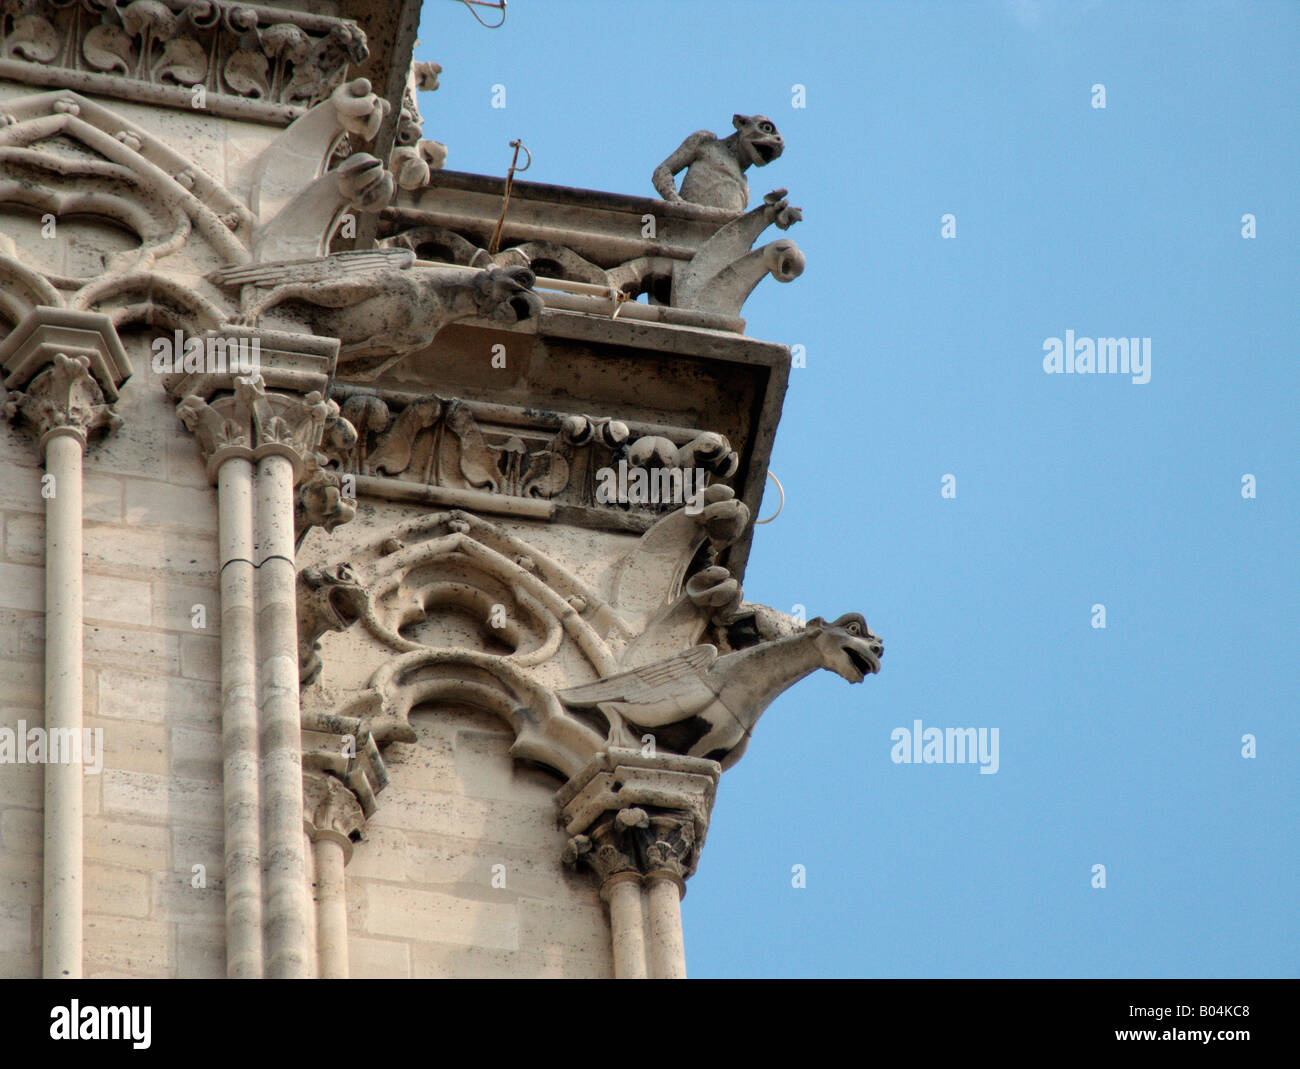 Detail Of Gothic Architecture At The Galerie Des Chimeres Notre Dame De Paris Cathedral France